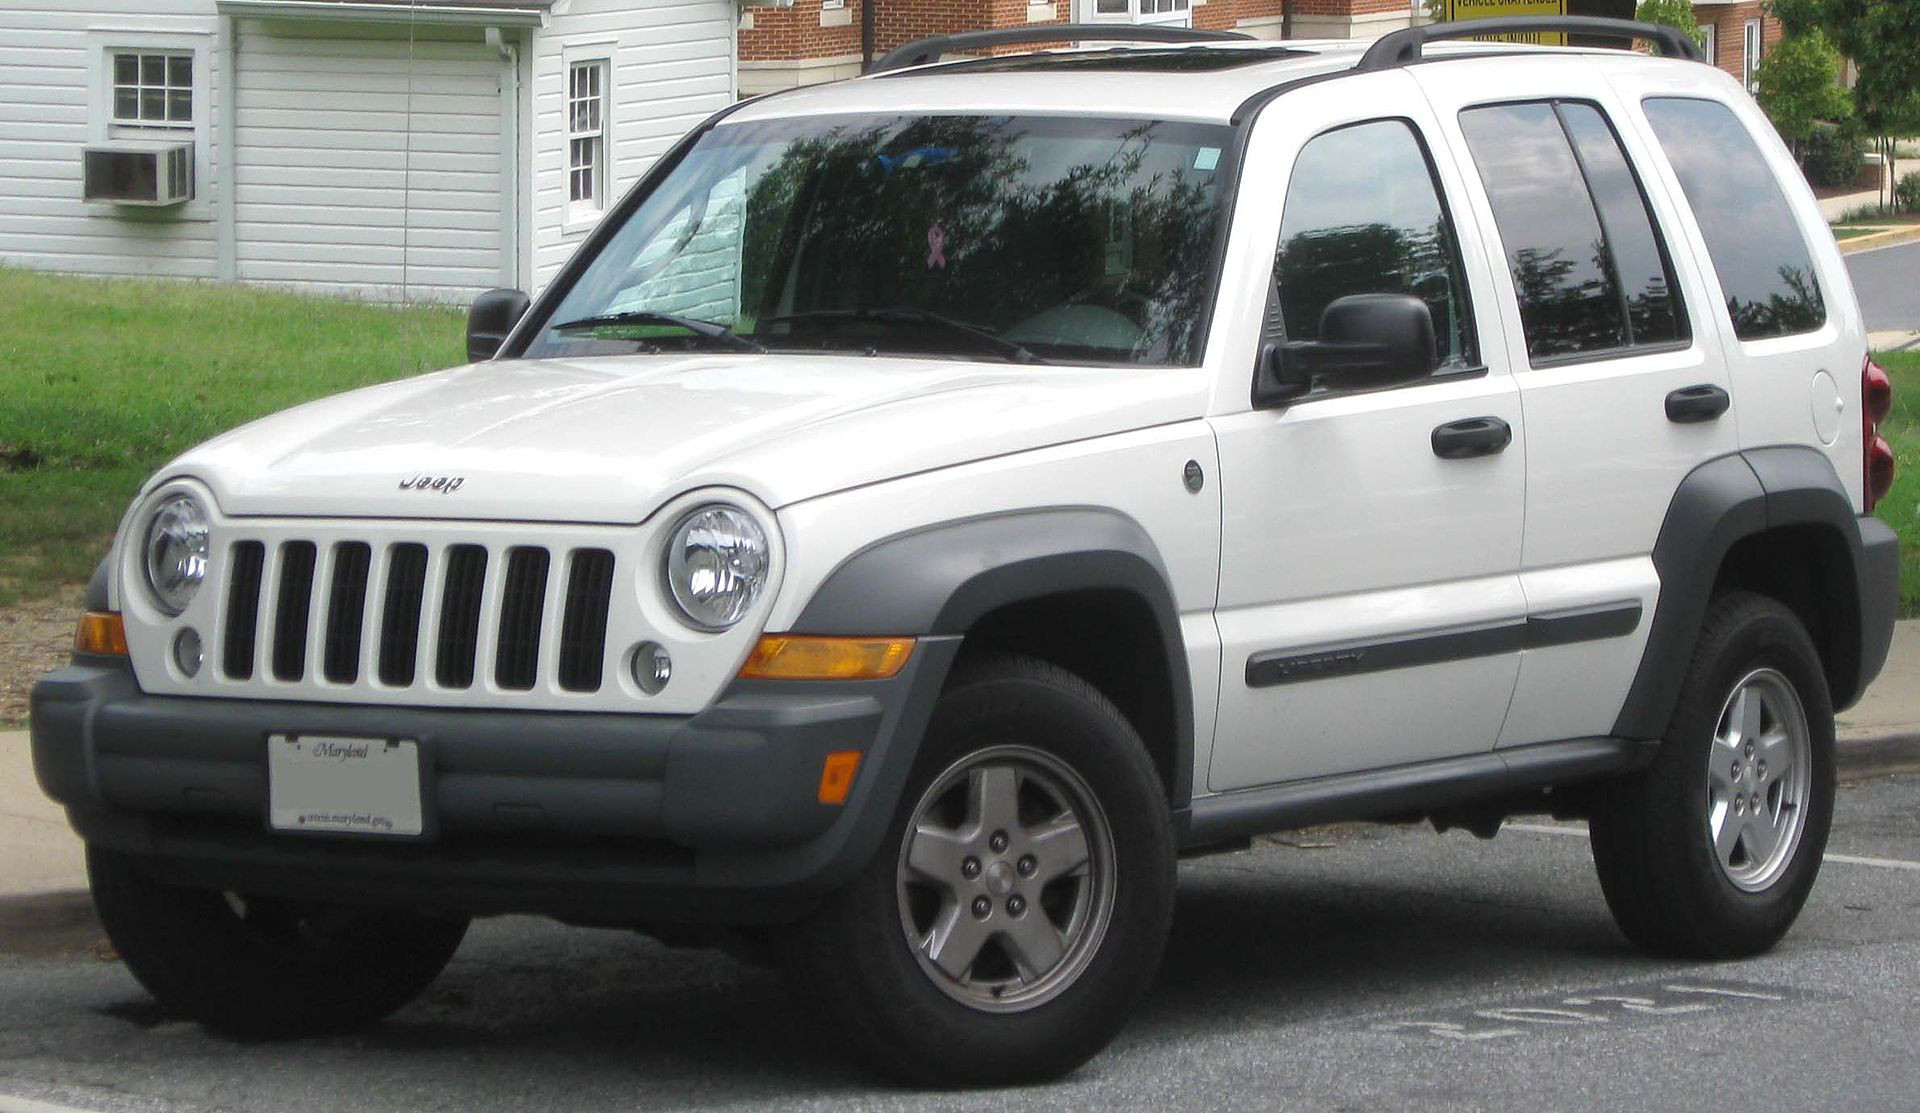 chrysler recalls model year 2004 2007 jeep libertys. Black Bedroom Furniture Sets. Home Design Ideas